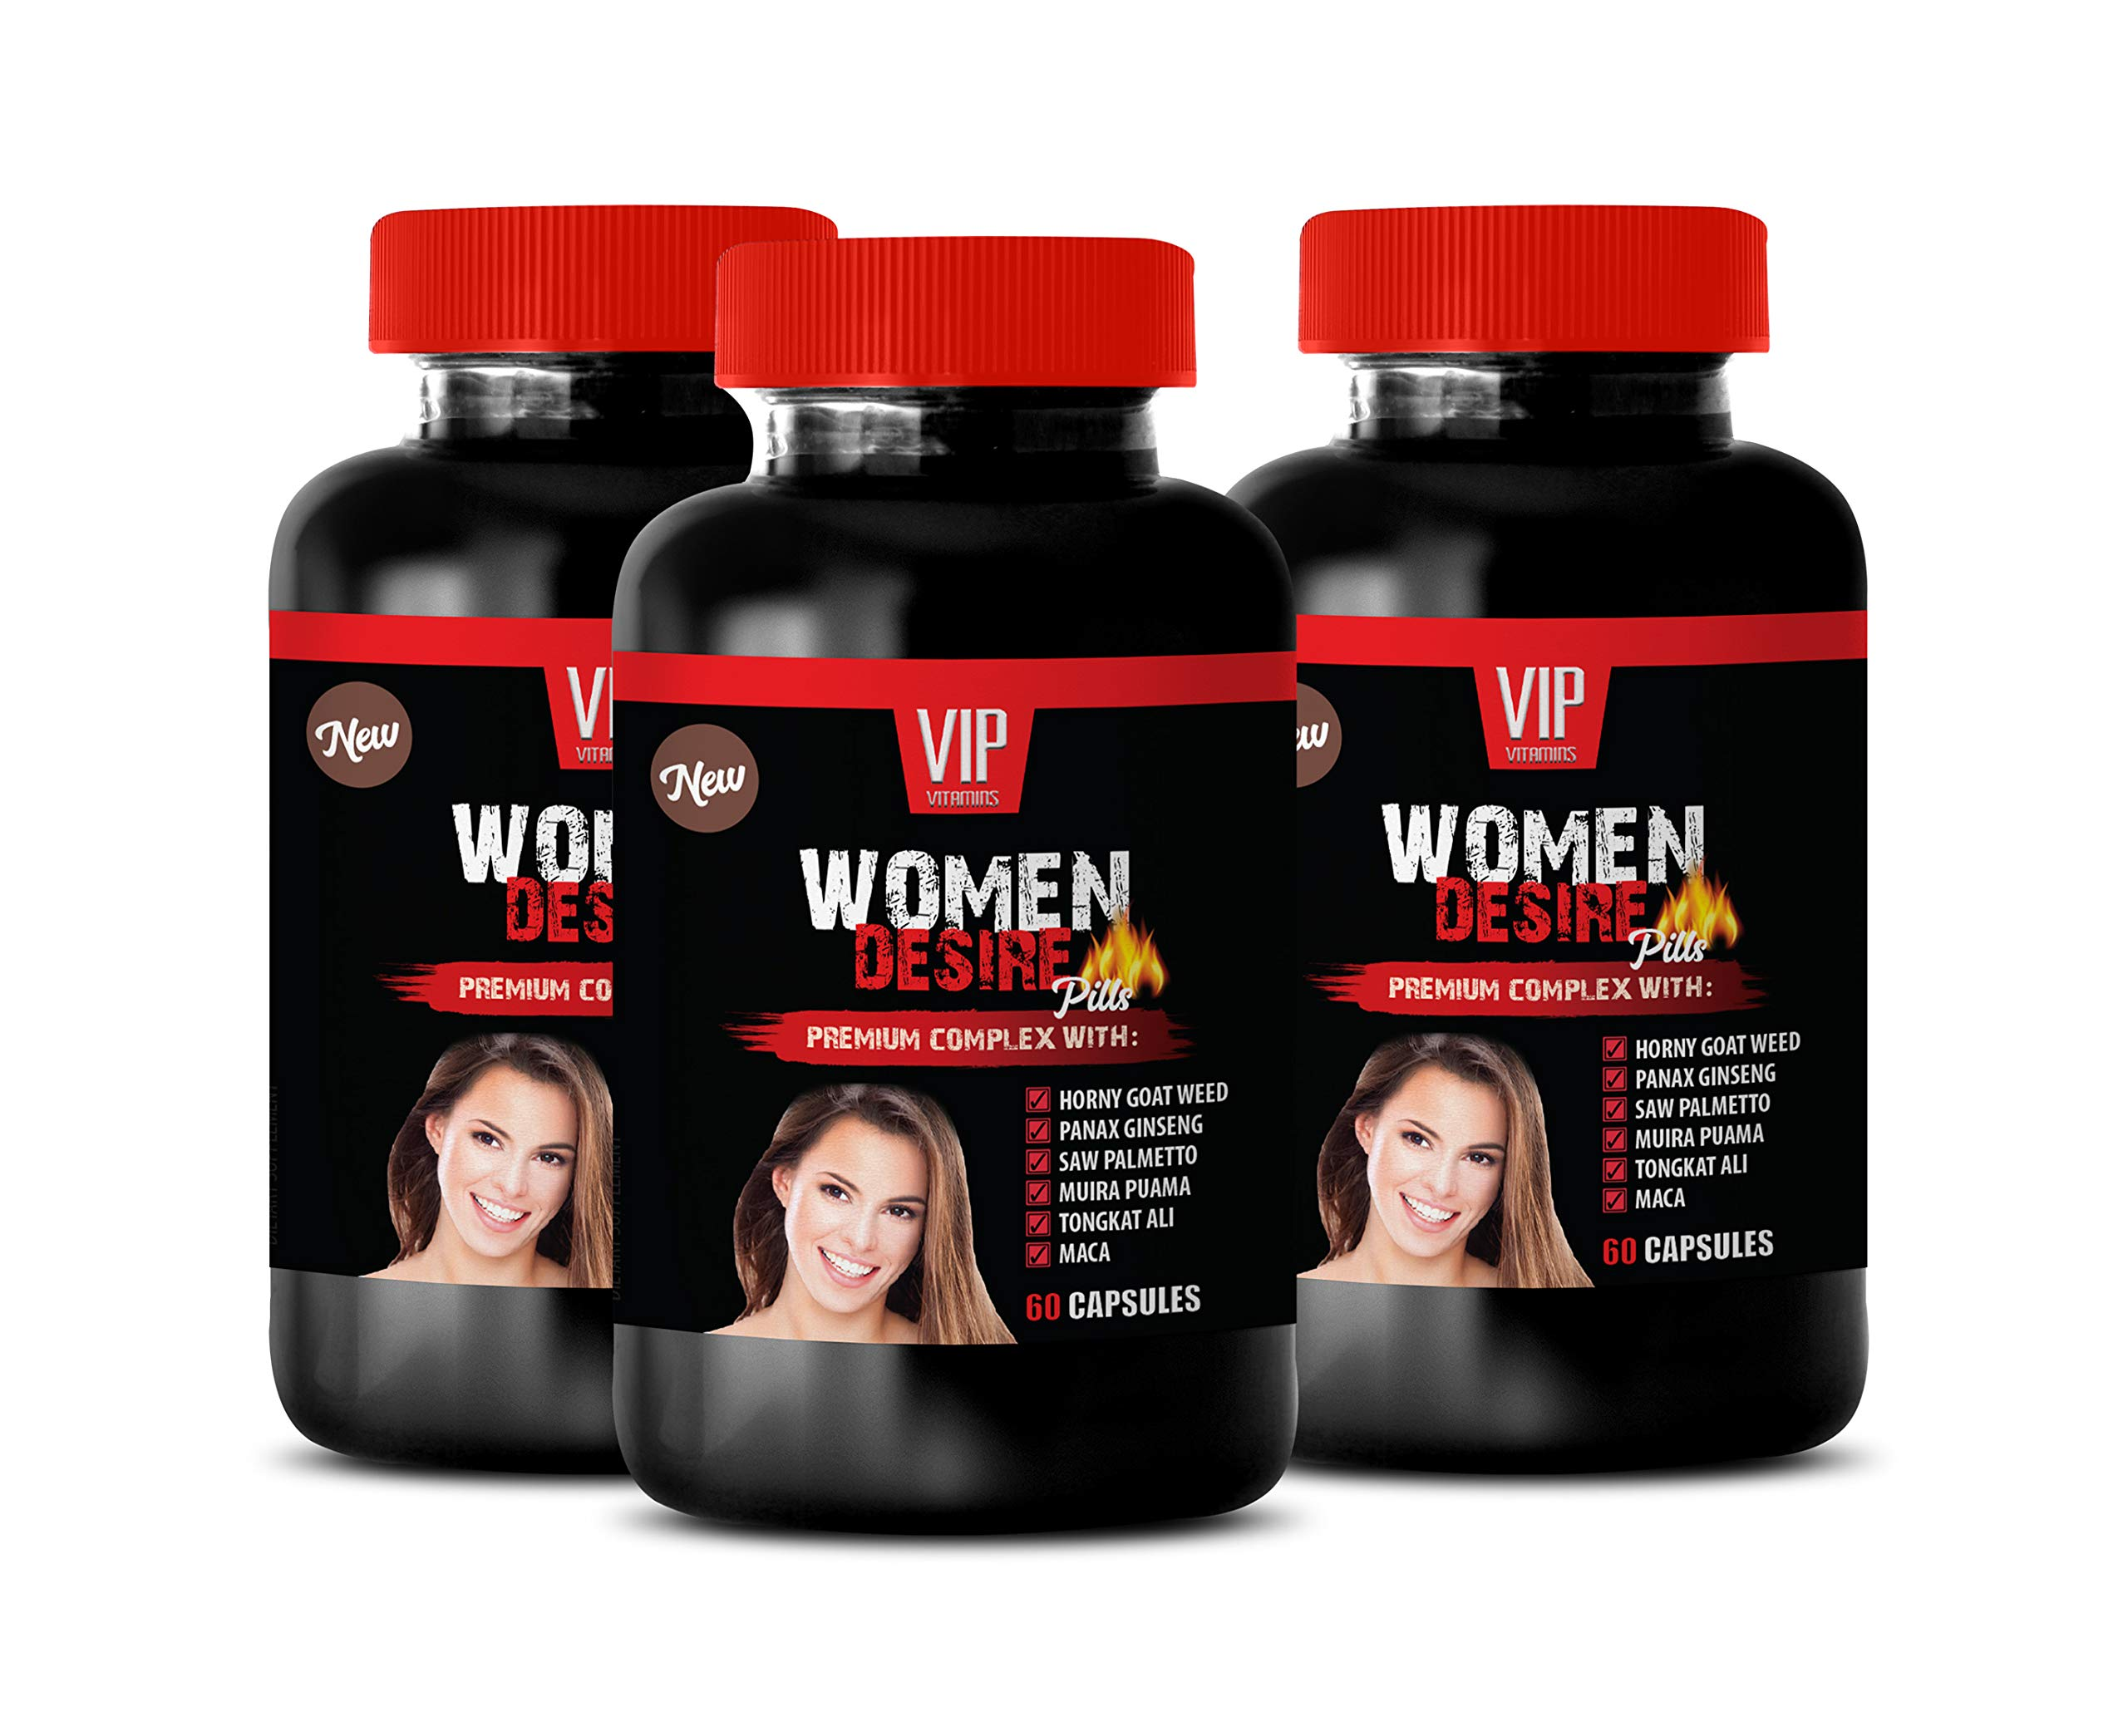 Energy Vitamins for Adults - Women Desire Pills - Premium Complex - maca Root high Strength - 3 Bottles 180 Capsules by VIP VITAMINS